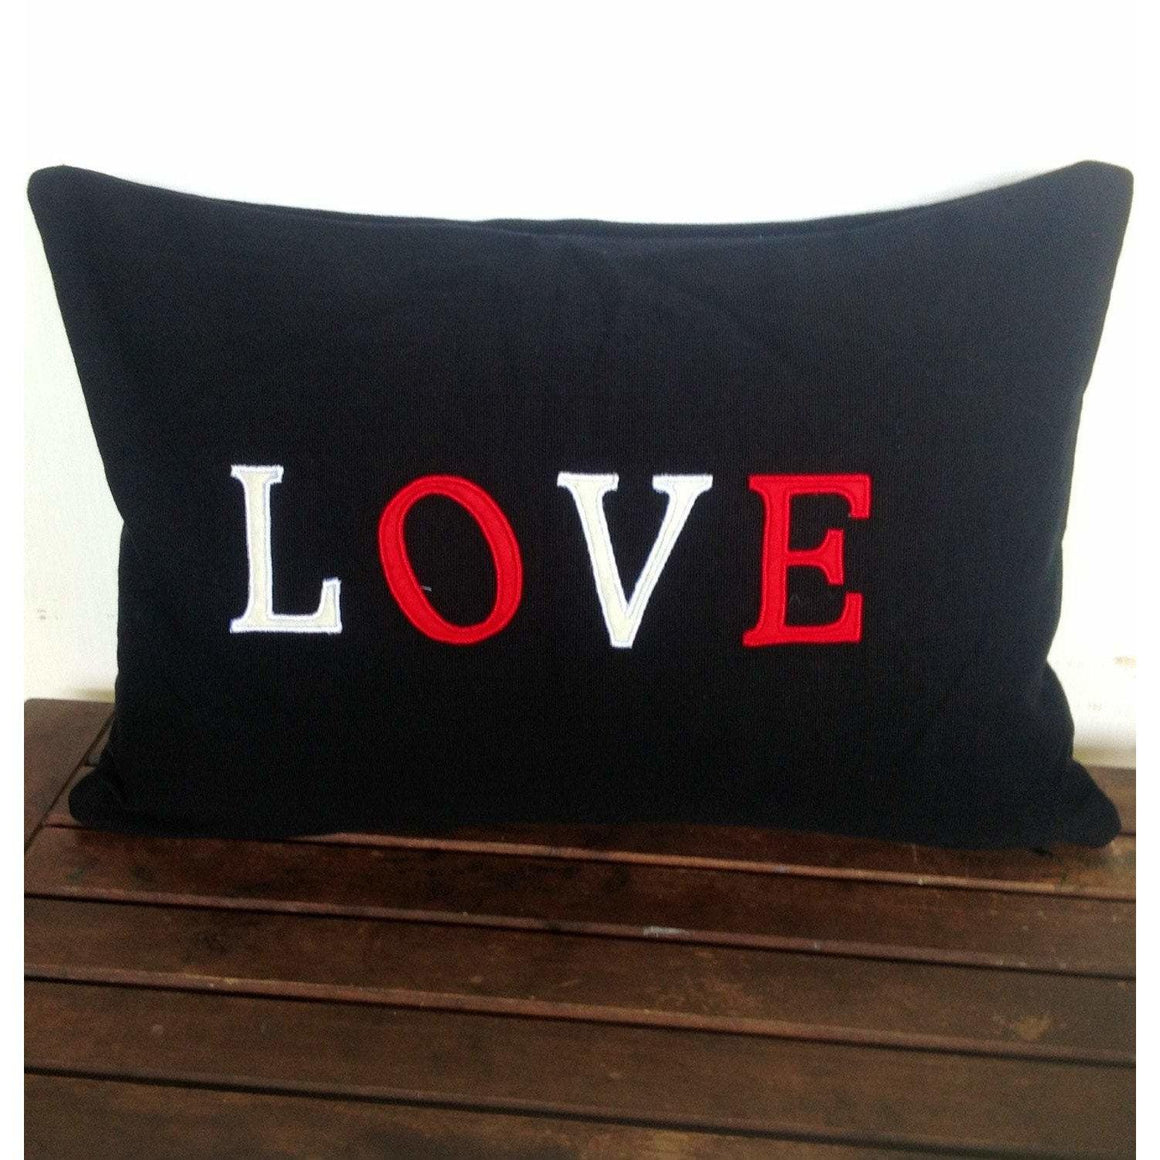 50% OFF Sale Shabby Chic Pillows, Valentine Pillows, Handmade Love Monogrammed Pillow Cover 12x18 inches black love pillow cover mothers day